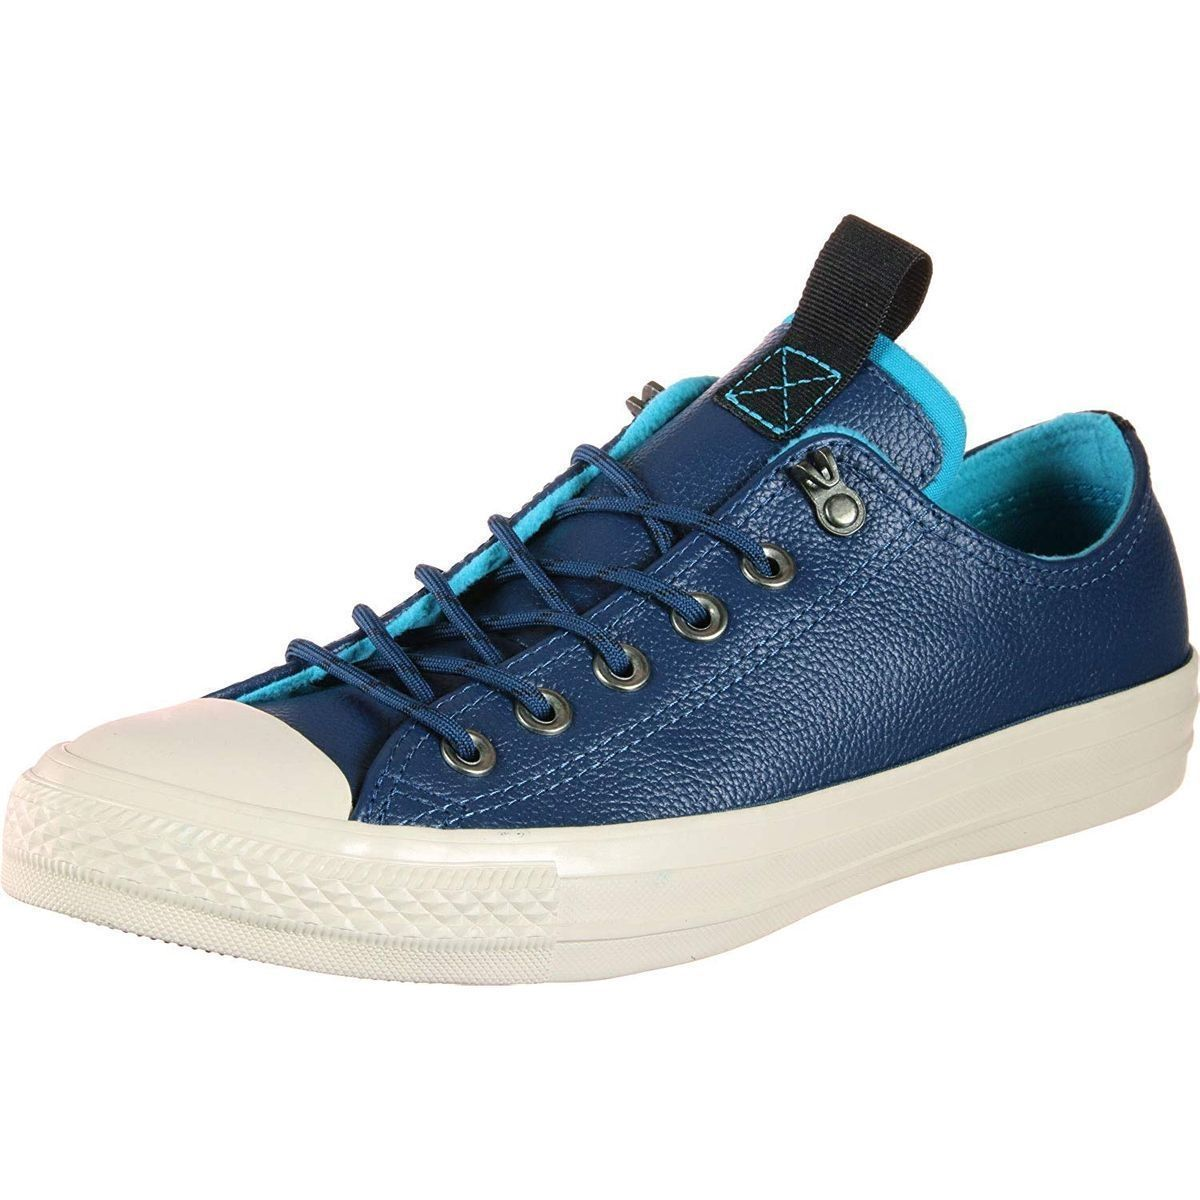 Converse homme chuck taylor all star leather   ox bleu